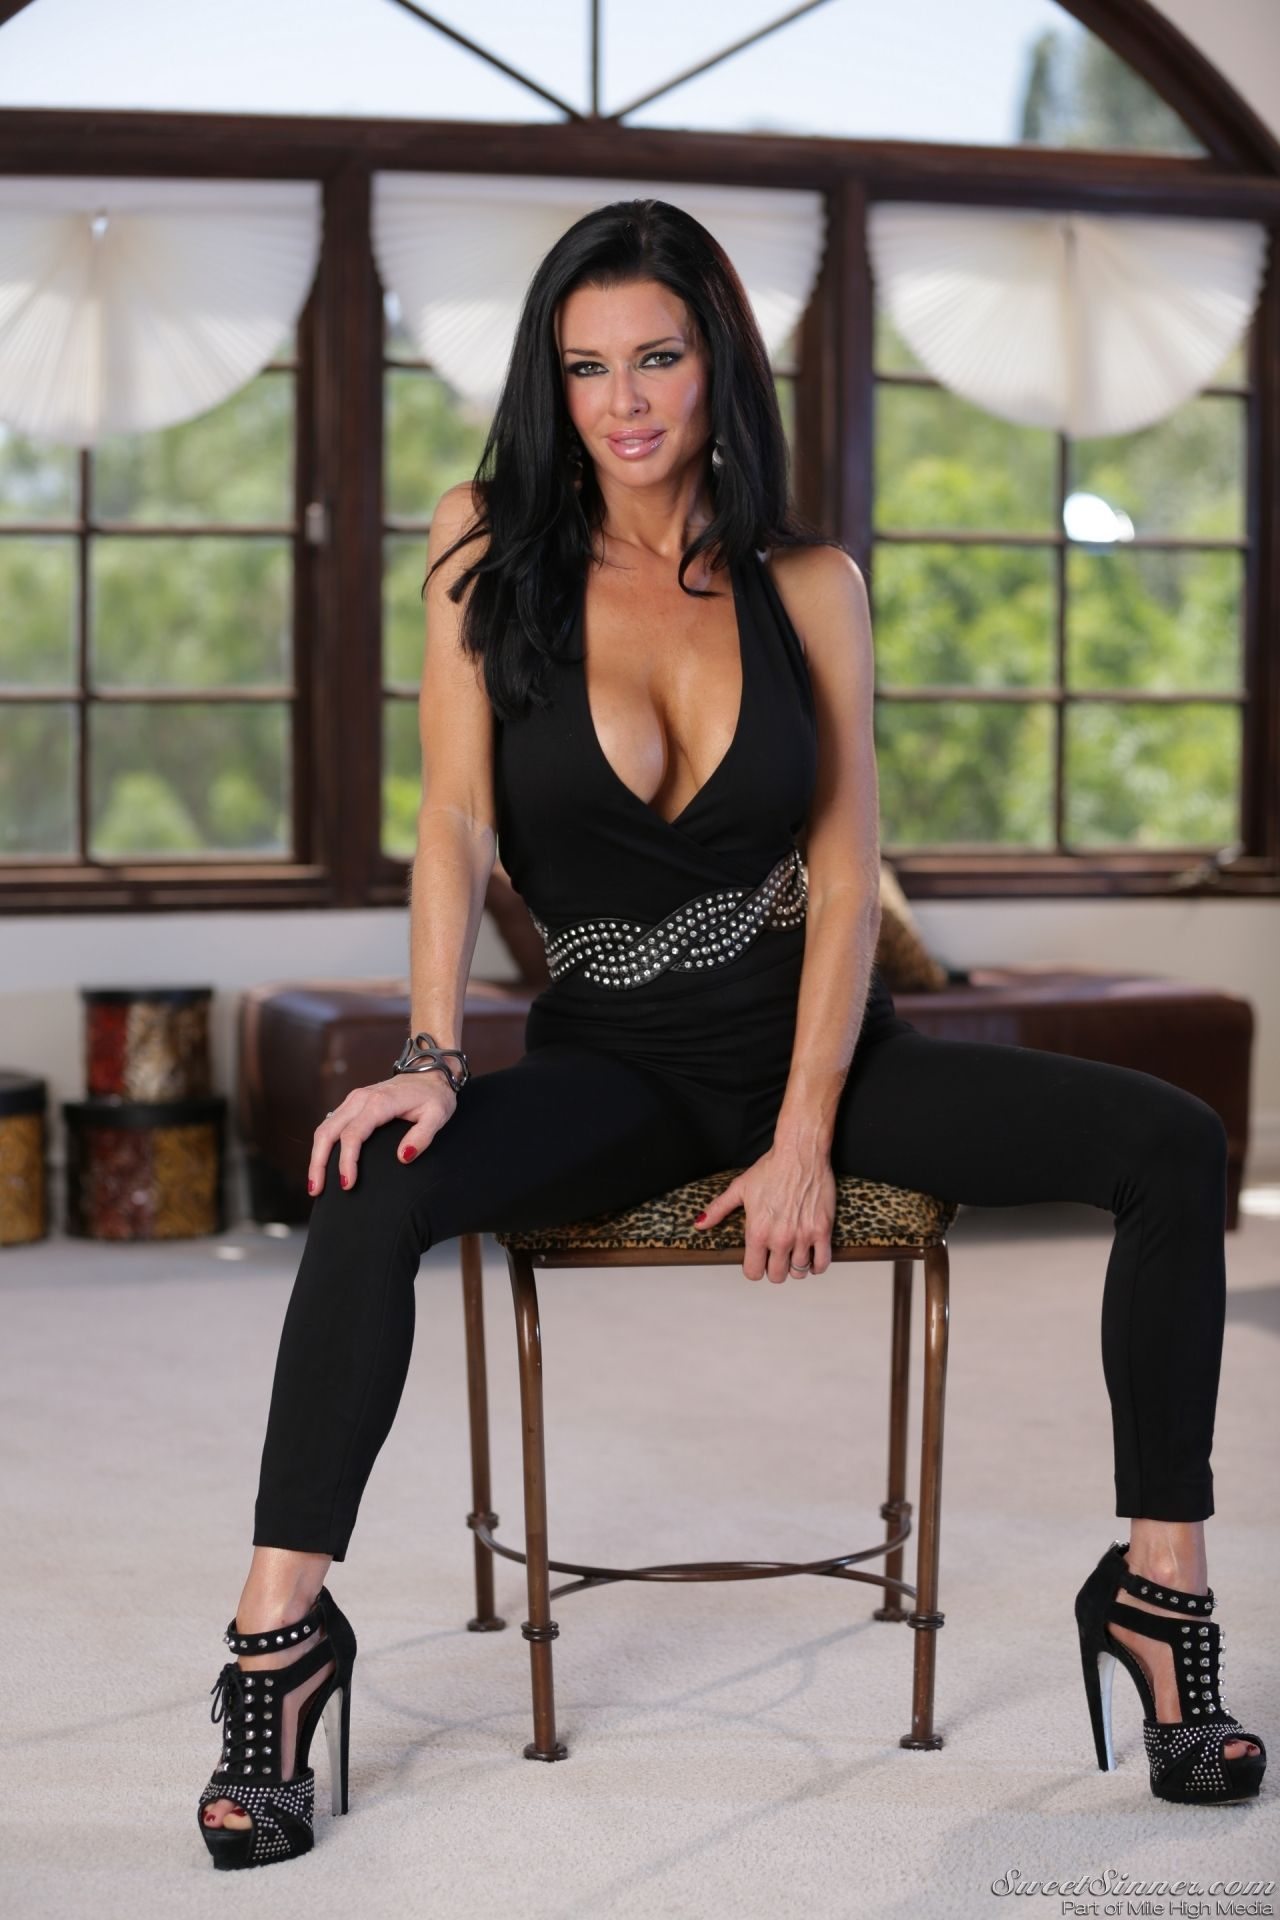 Veronica Avluv The Swinger Photoshoot Feb 2014